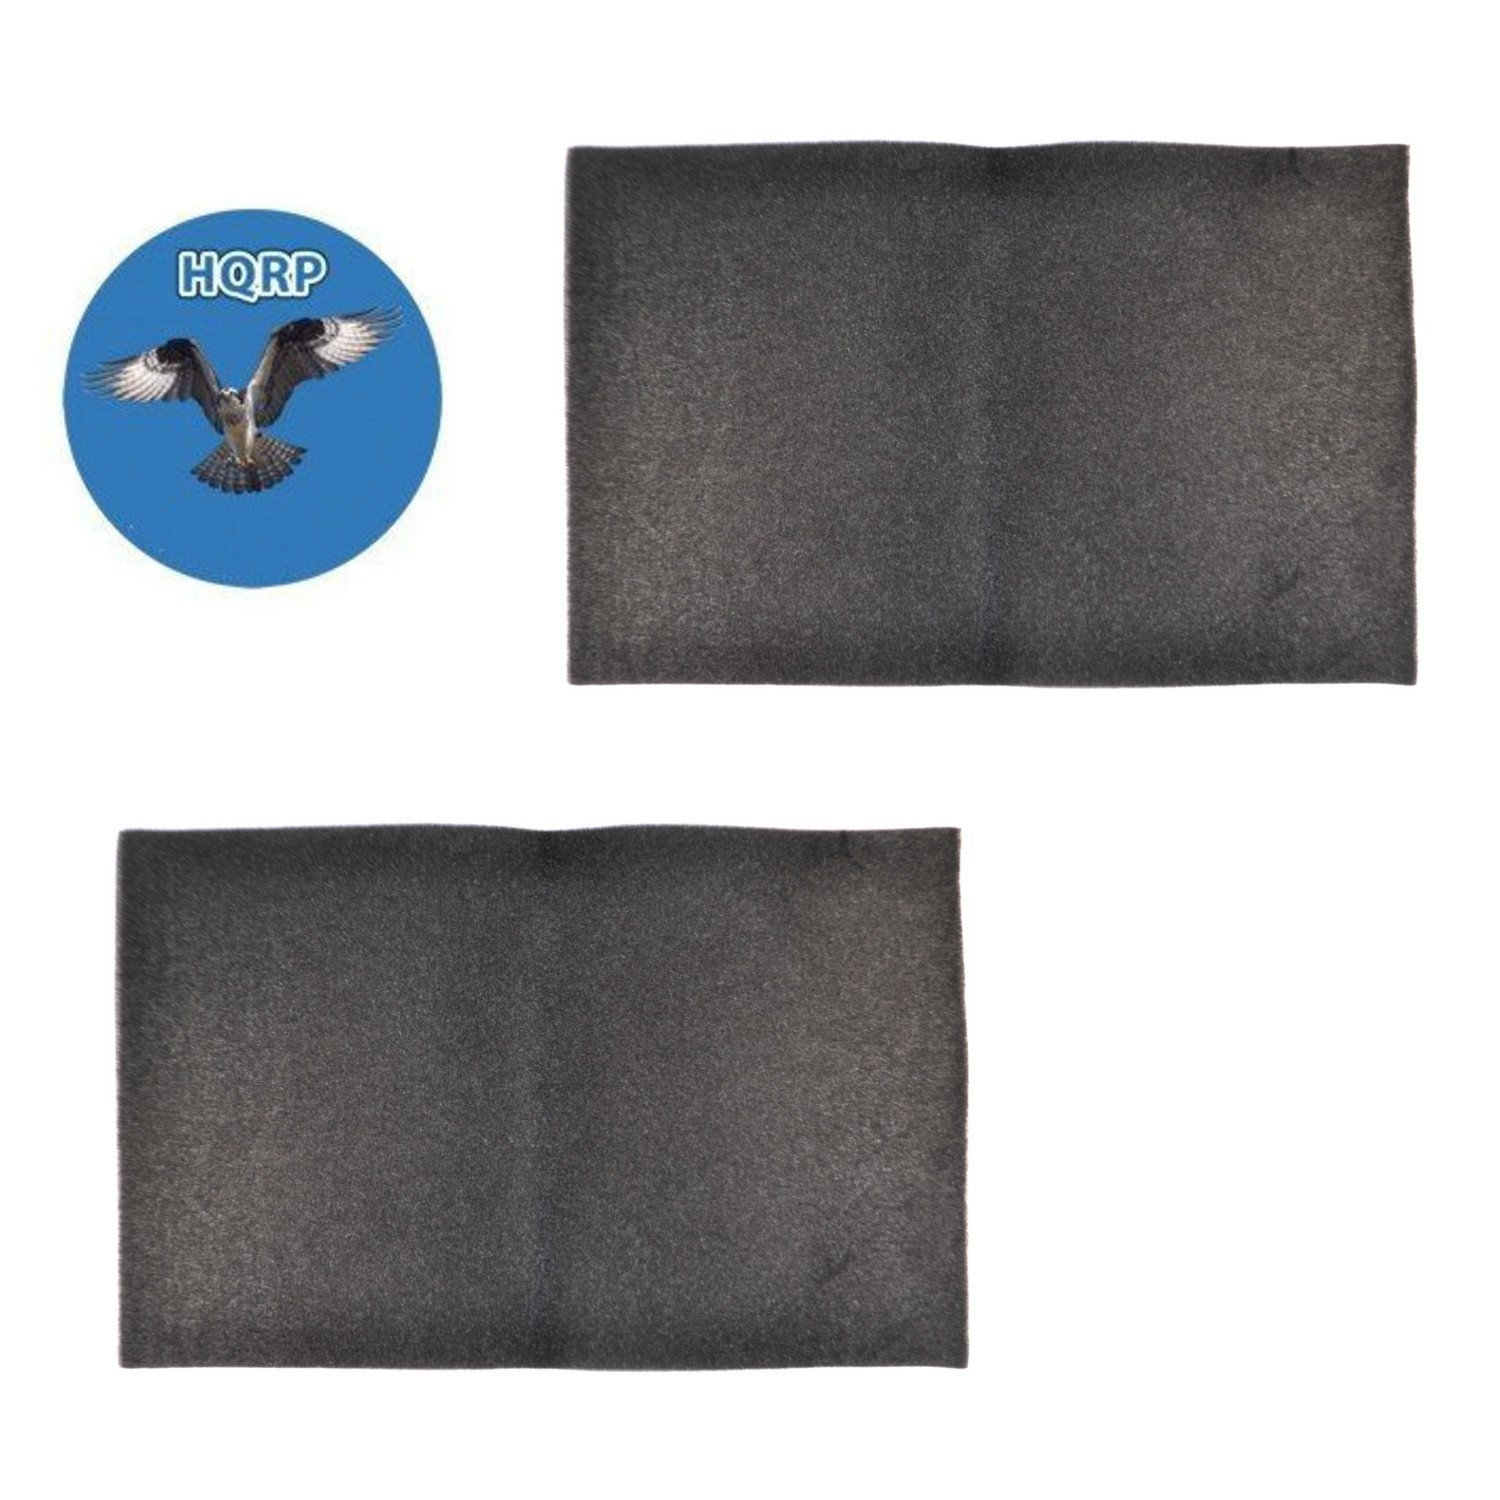 HQRP 2-Pack Air Conditioner Foam Filter for Duck Brand 1285234 Replacement, 24-Inch x 15-Inch x 1/4-Inch Coaster